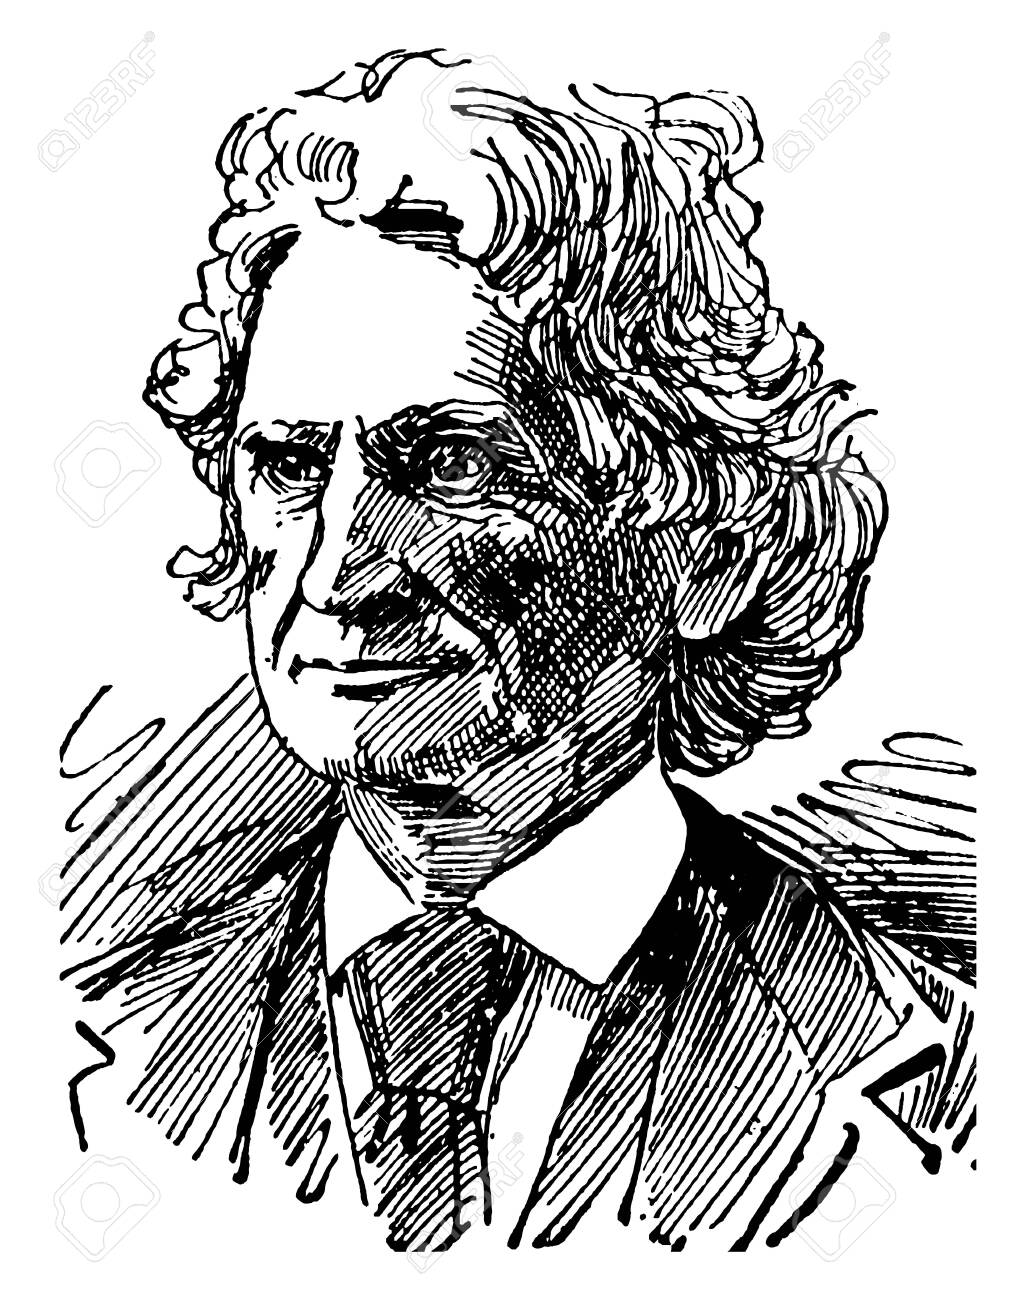 James D. Dana, 1813-1895, he was an American geologist, mineralogist, volcanologist, and zoologist, vintage line drawing or engraving illustration - 133022868